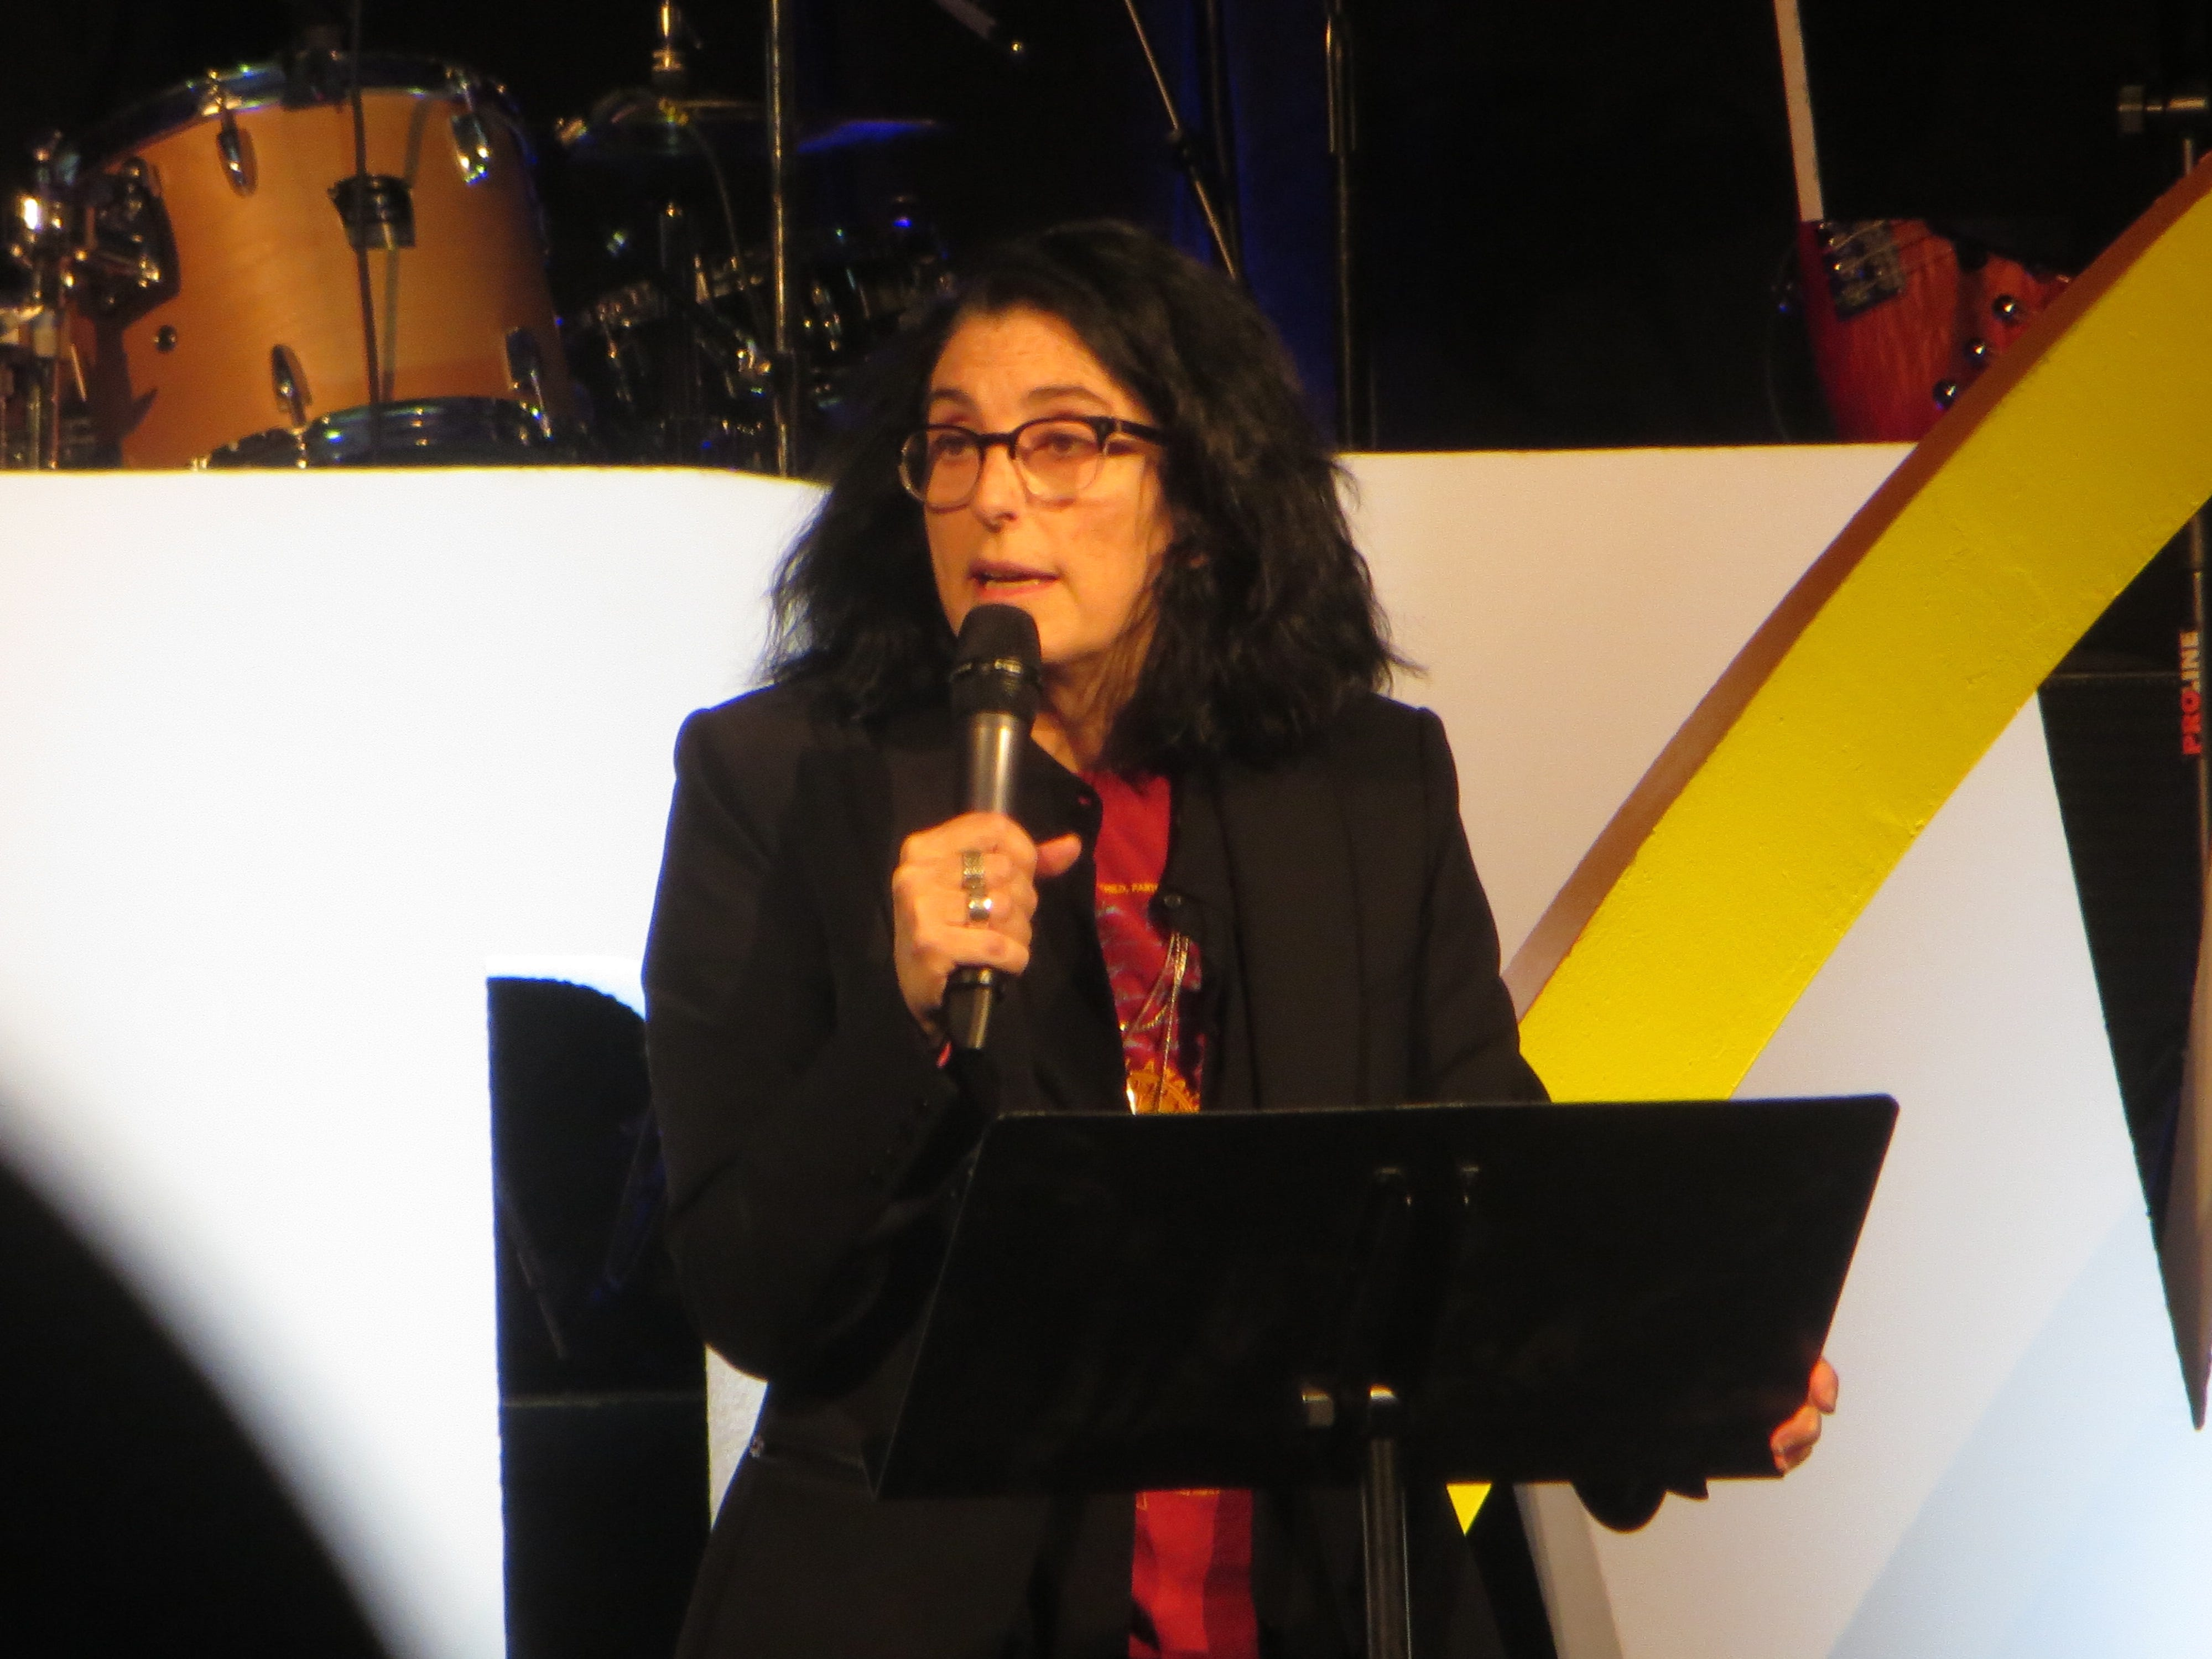 Tina Landau speaks during the opening ceremony at BroadwayCon 2019, held Jan. 11 to 13, 2019, at the New York Hilton Midtown in Manhattan.